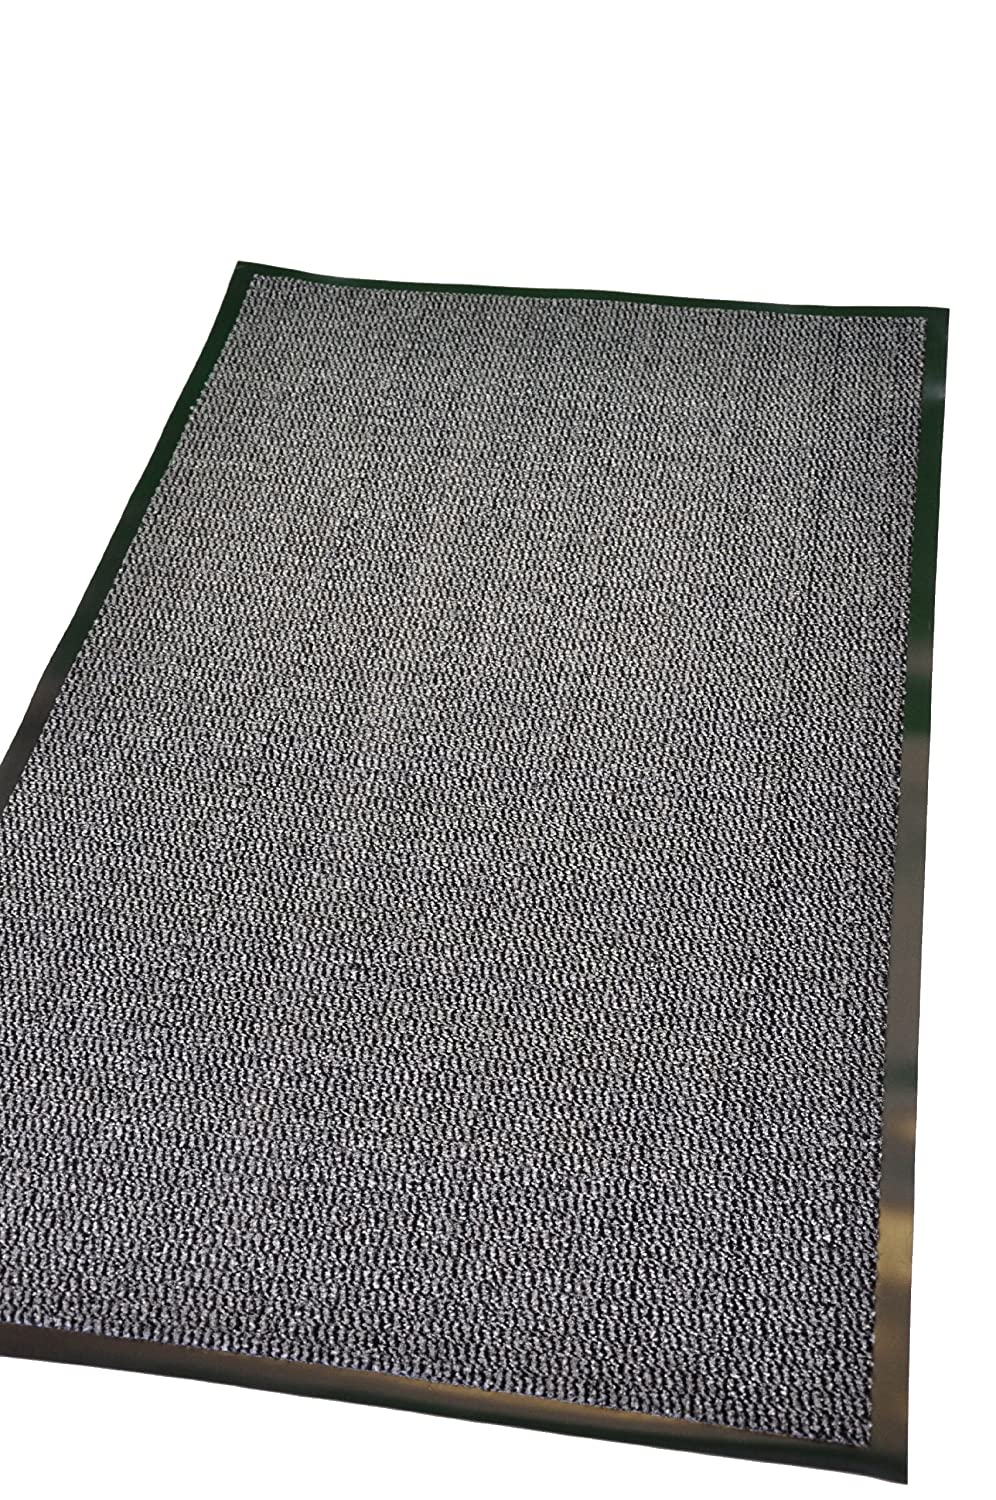 Extra Large Medium Small High Grade Top Quality Non Slip Door Mat Rubber Backed Runner Mats Rugs PVC 7mm thick Non Shedding Indoor / Outdoor Use 4 Colours 5 Sizes Made in EU AAA Grade & Quality Commercial Standard (Grey, 60x180cm (2x6')) 60x180cm (2x6